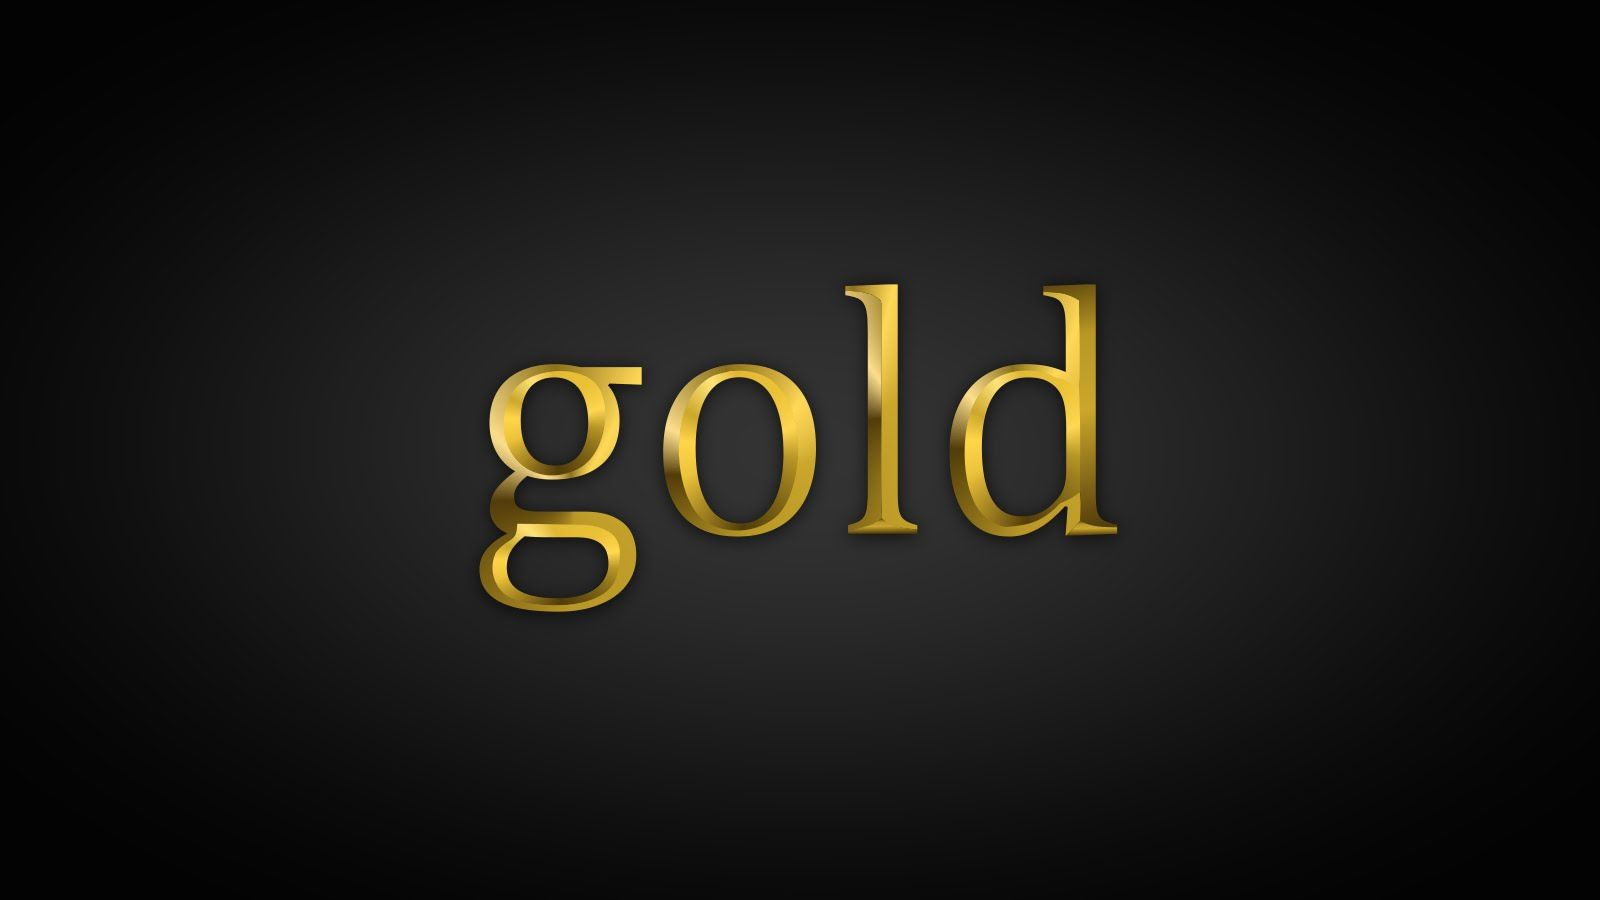 Find This Pin And More On Coreldraw Tutorials Gold: Coreldraw Text Effect  Tutorial